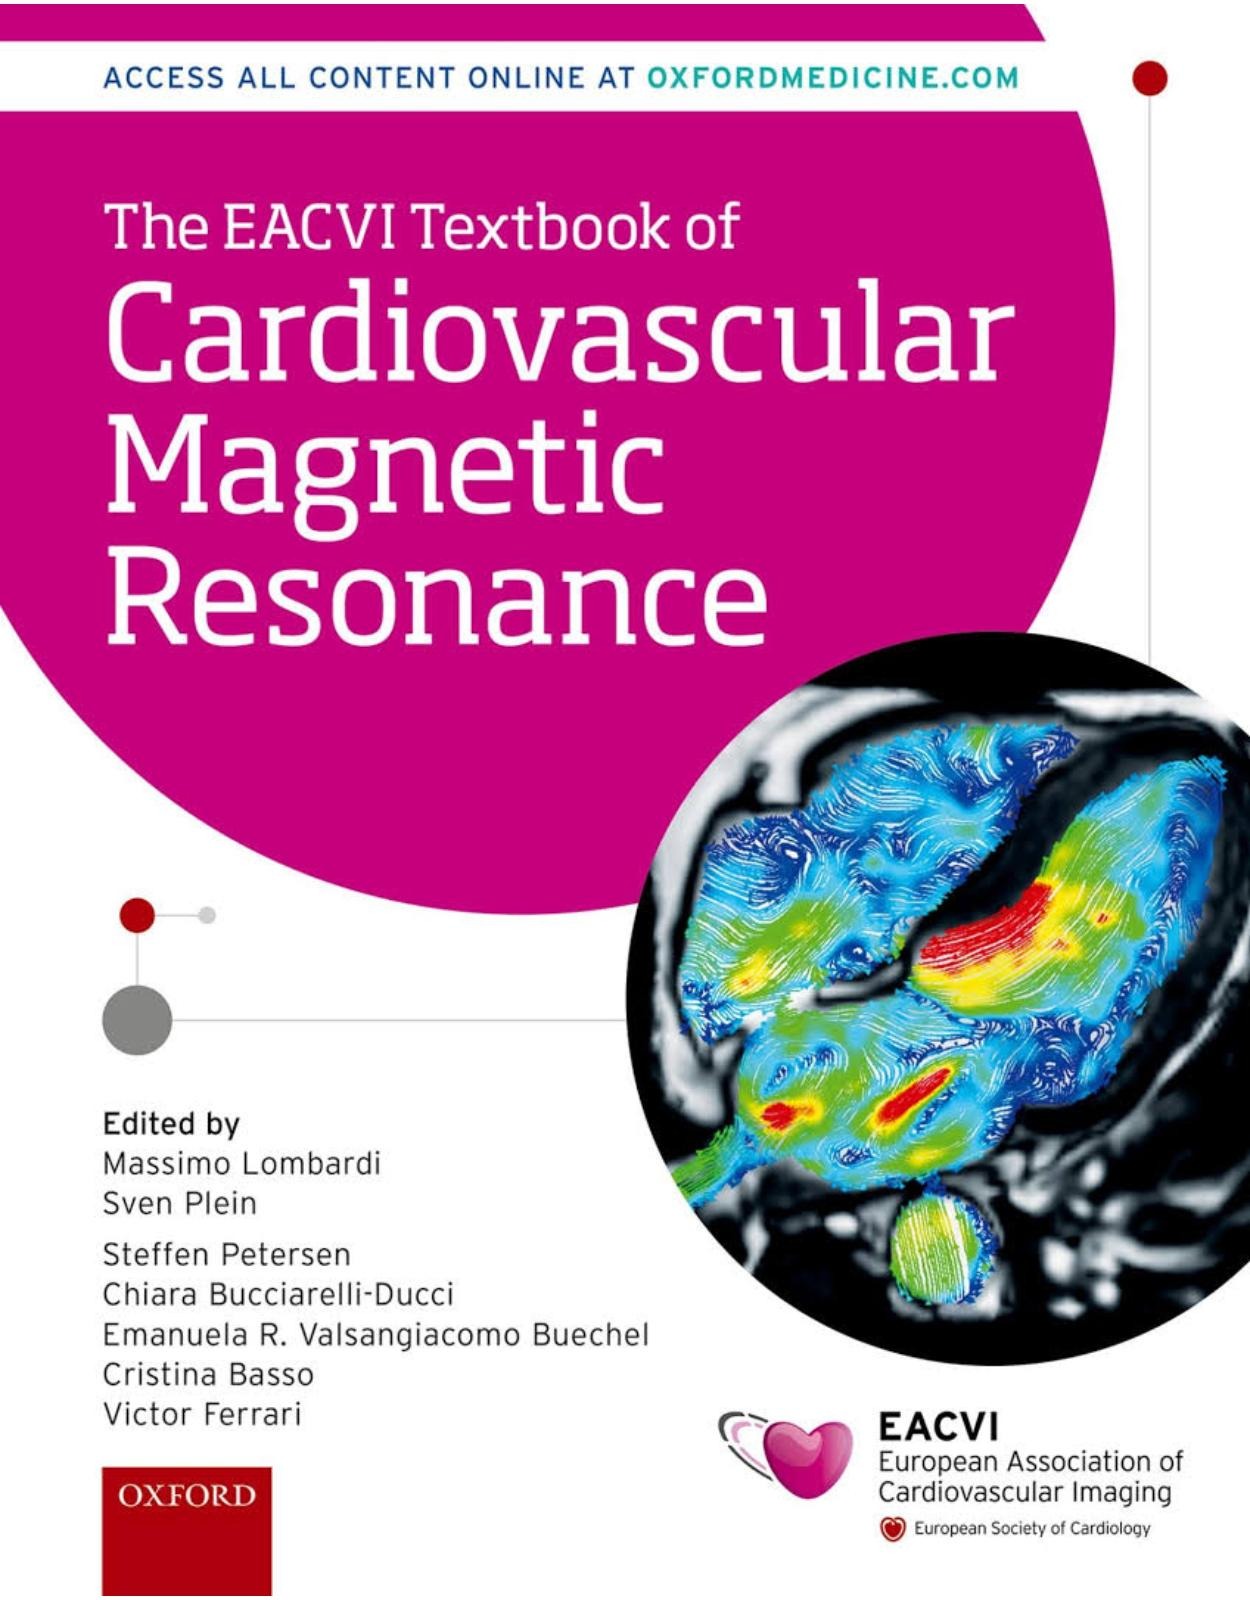 The EACVI Textbook of Cardiovascular Magnetic Resonance (The European Society of Cardiology Series)